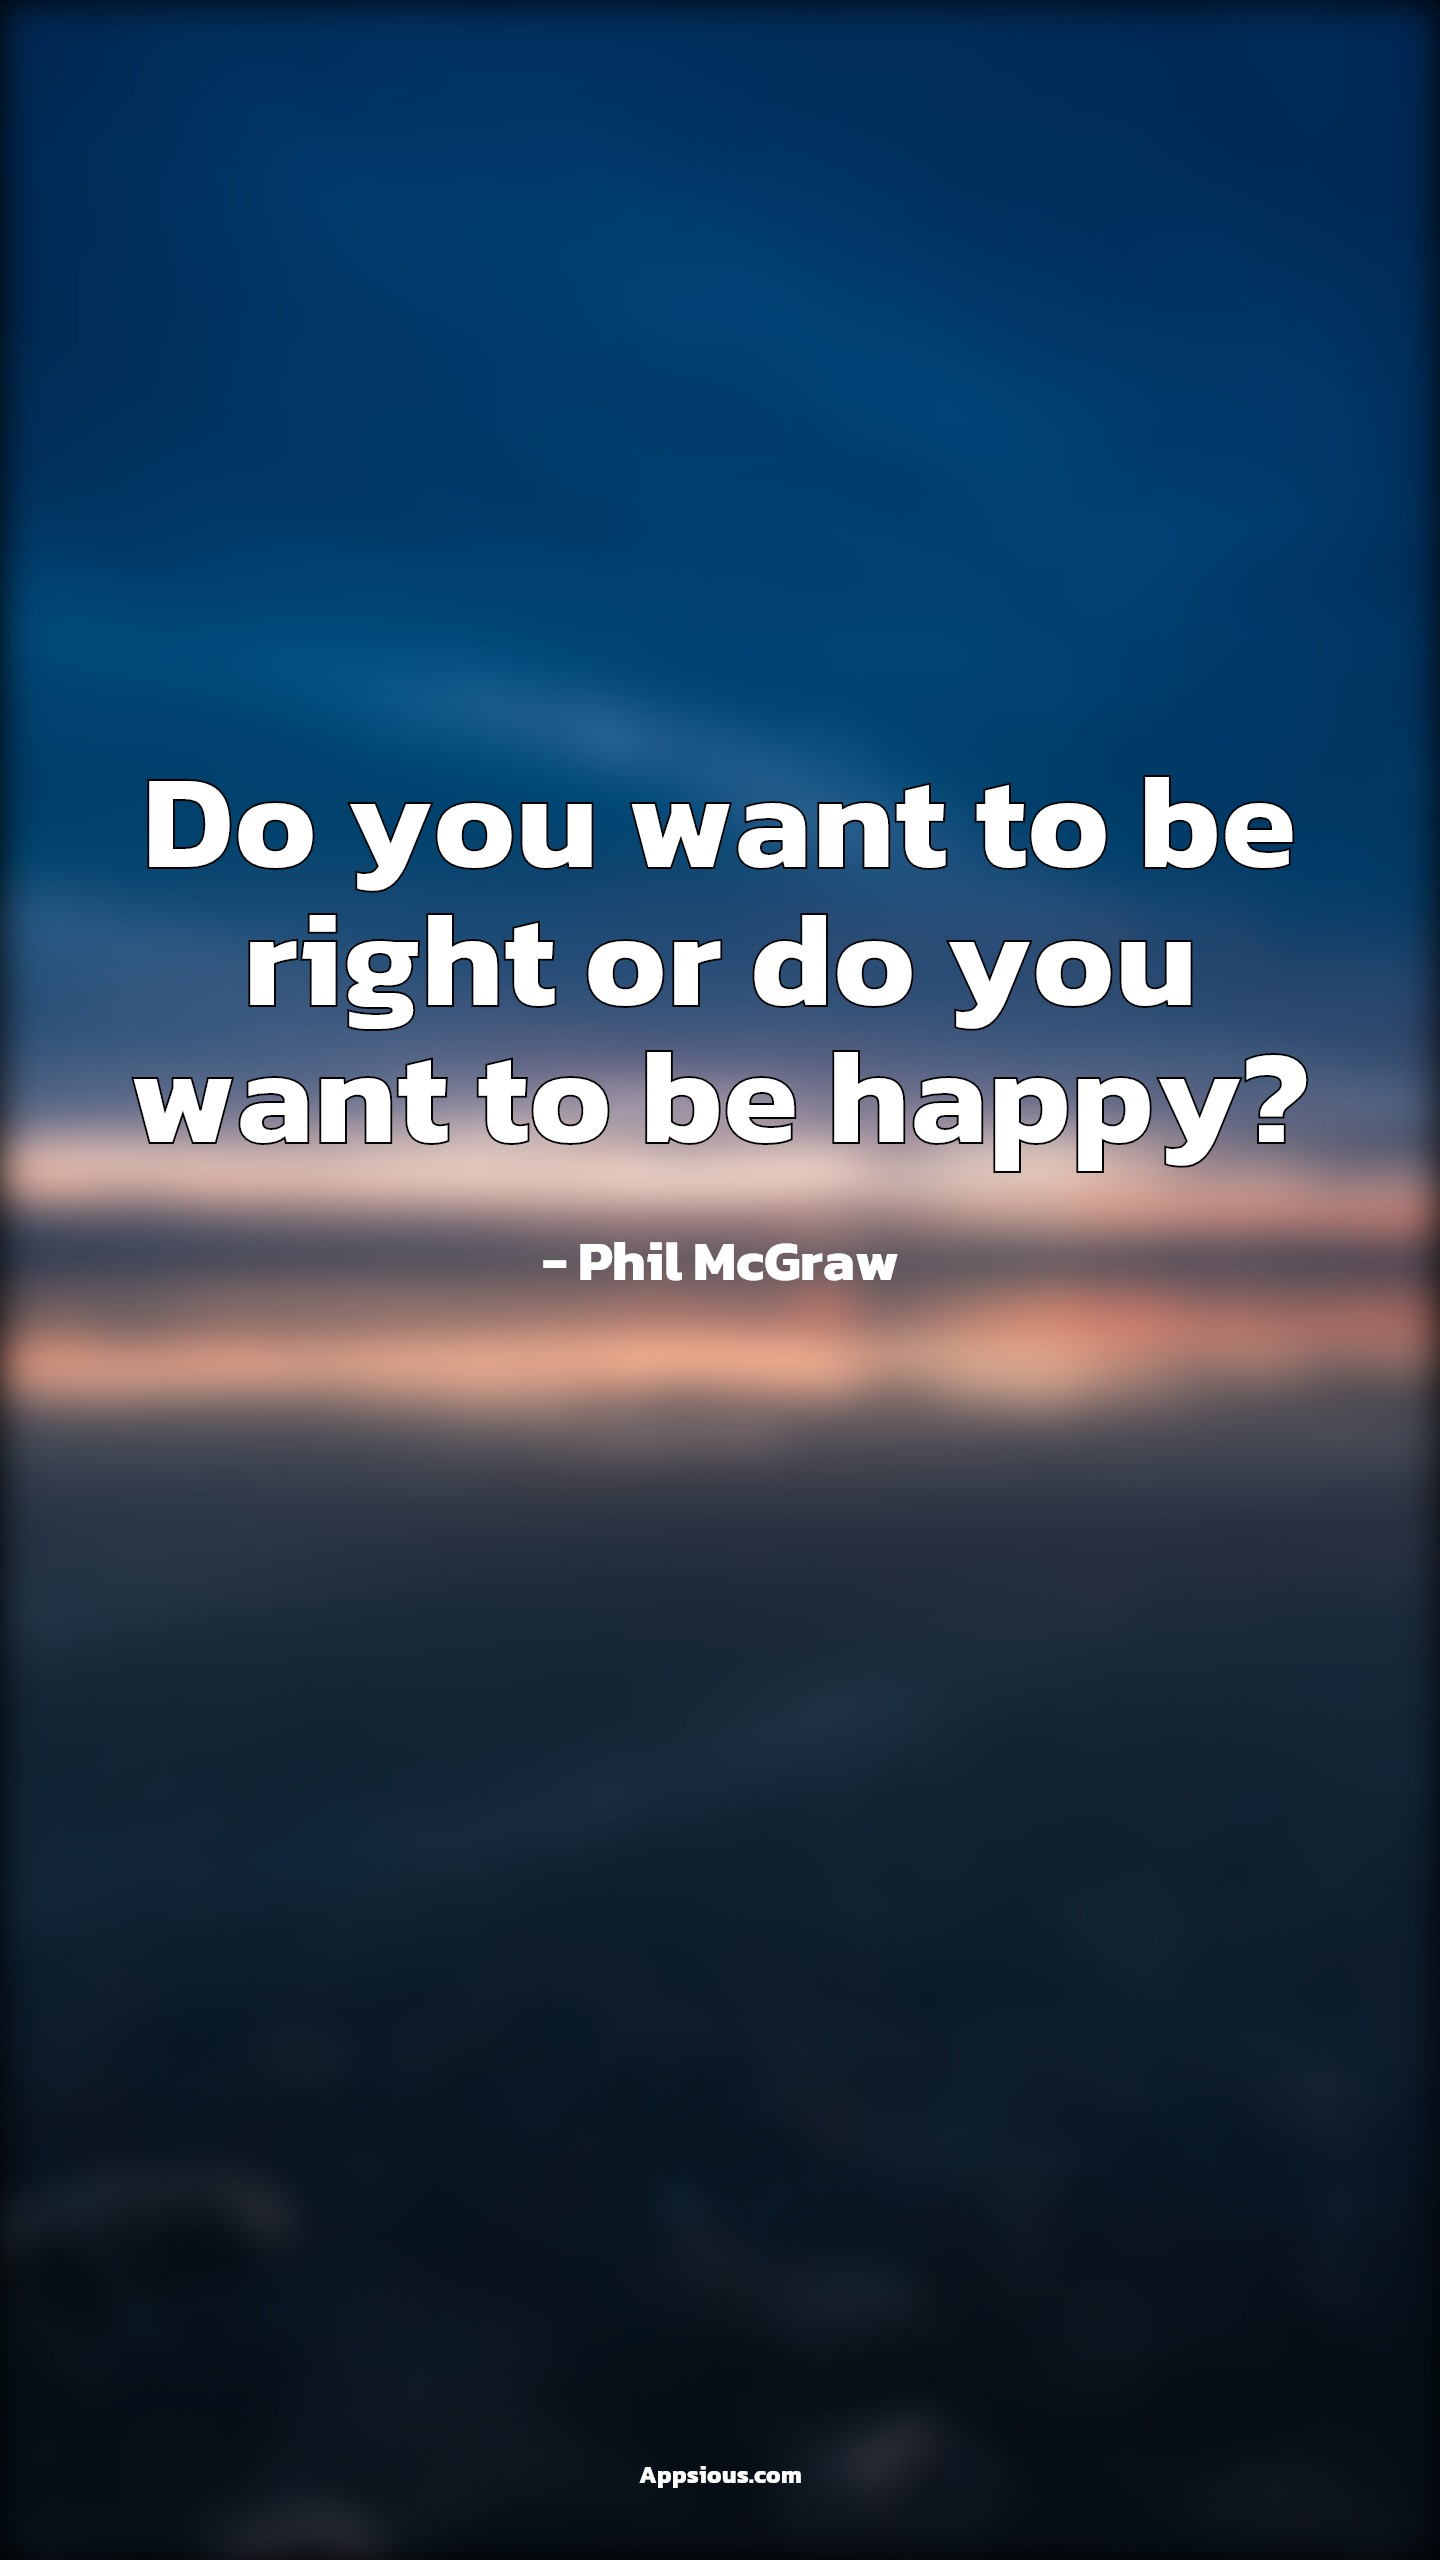 Do you want to be right or do you want to be happy?